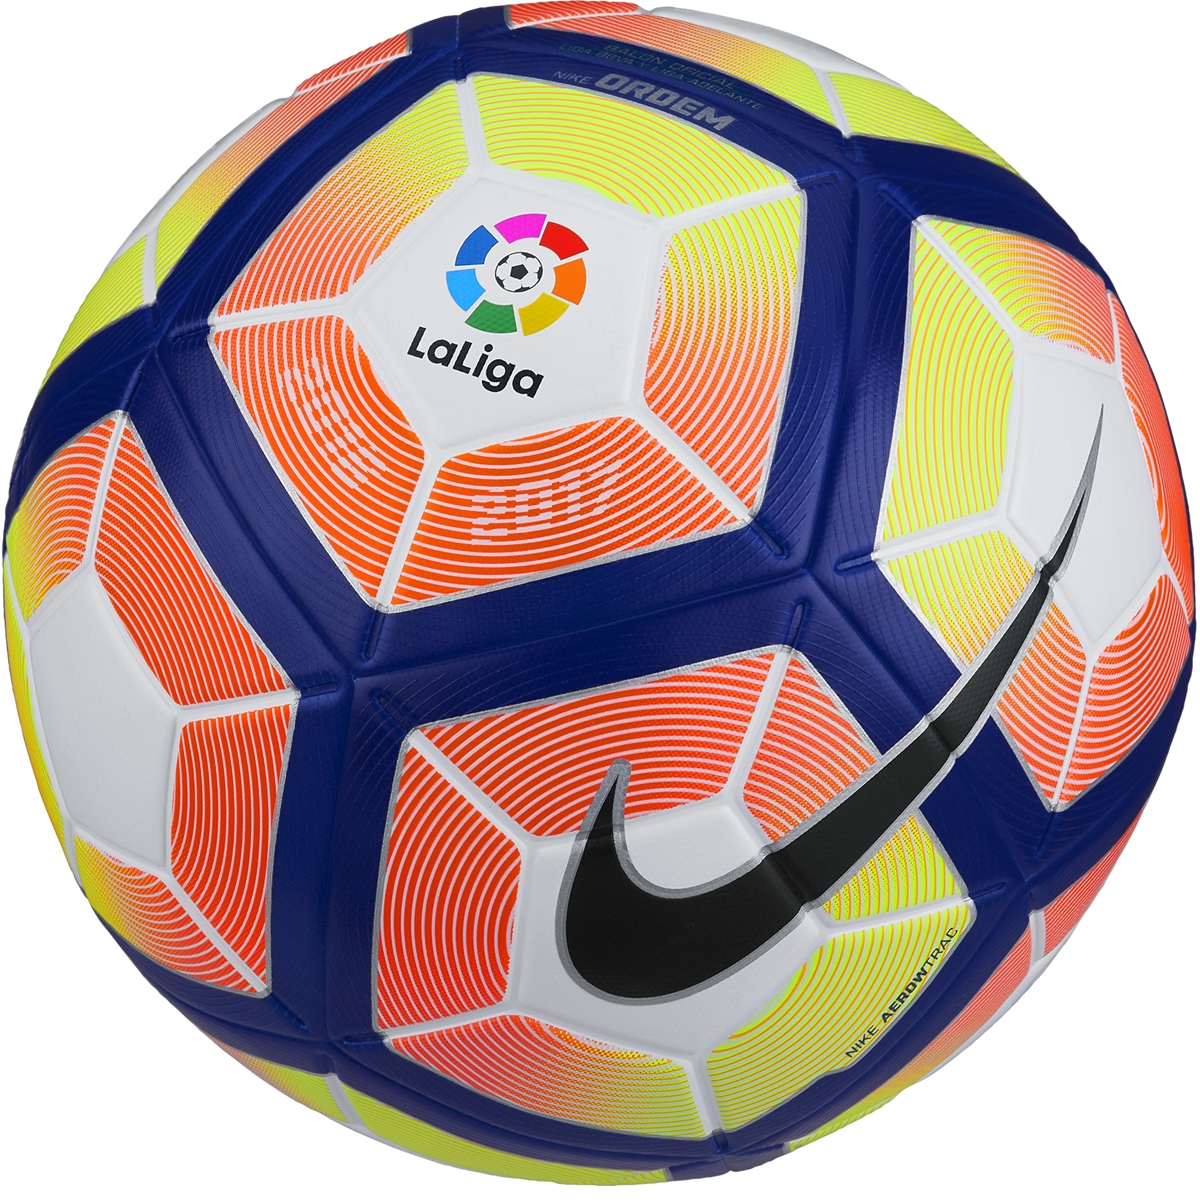 Soccer: Nike Ordem 4 Match La -Liga Soccer Ball In Yellow, Orange